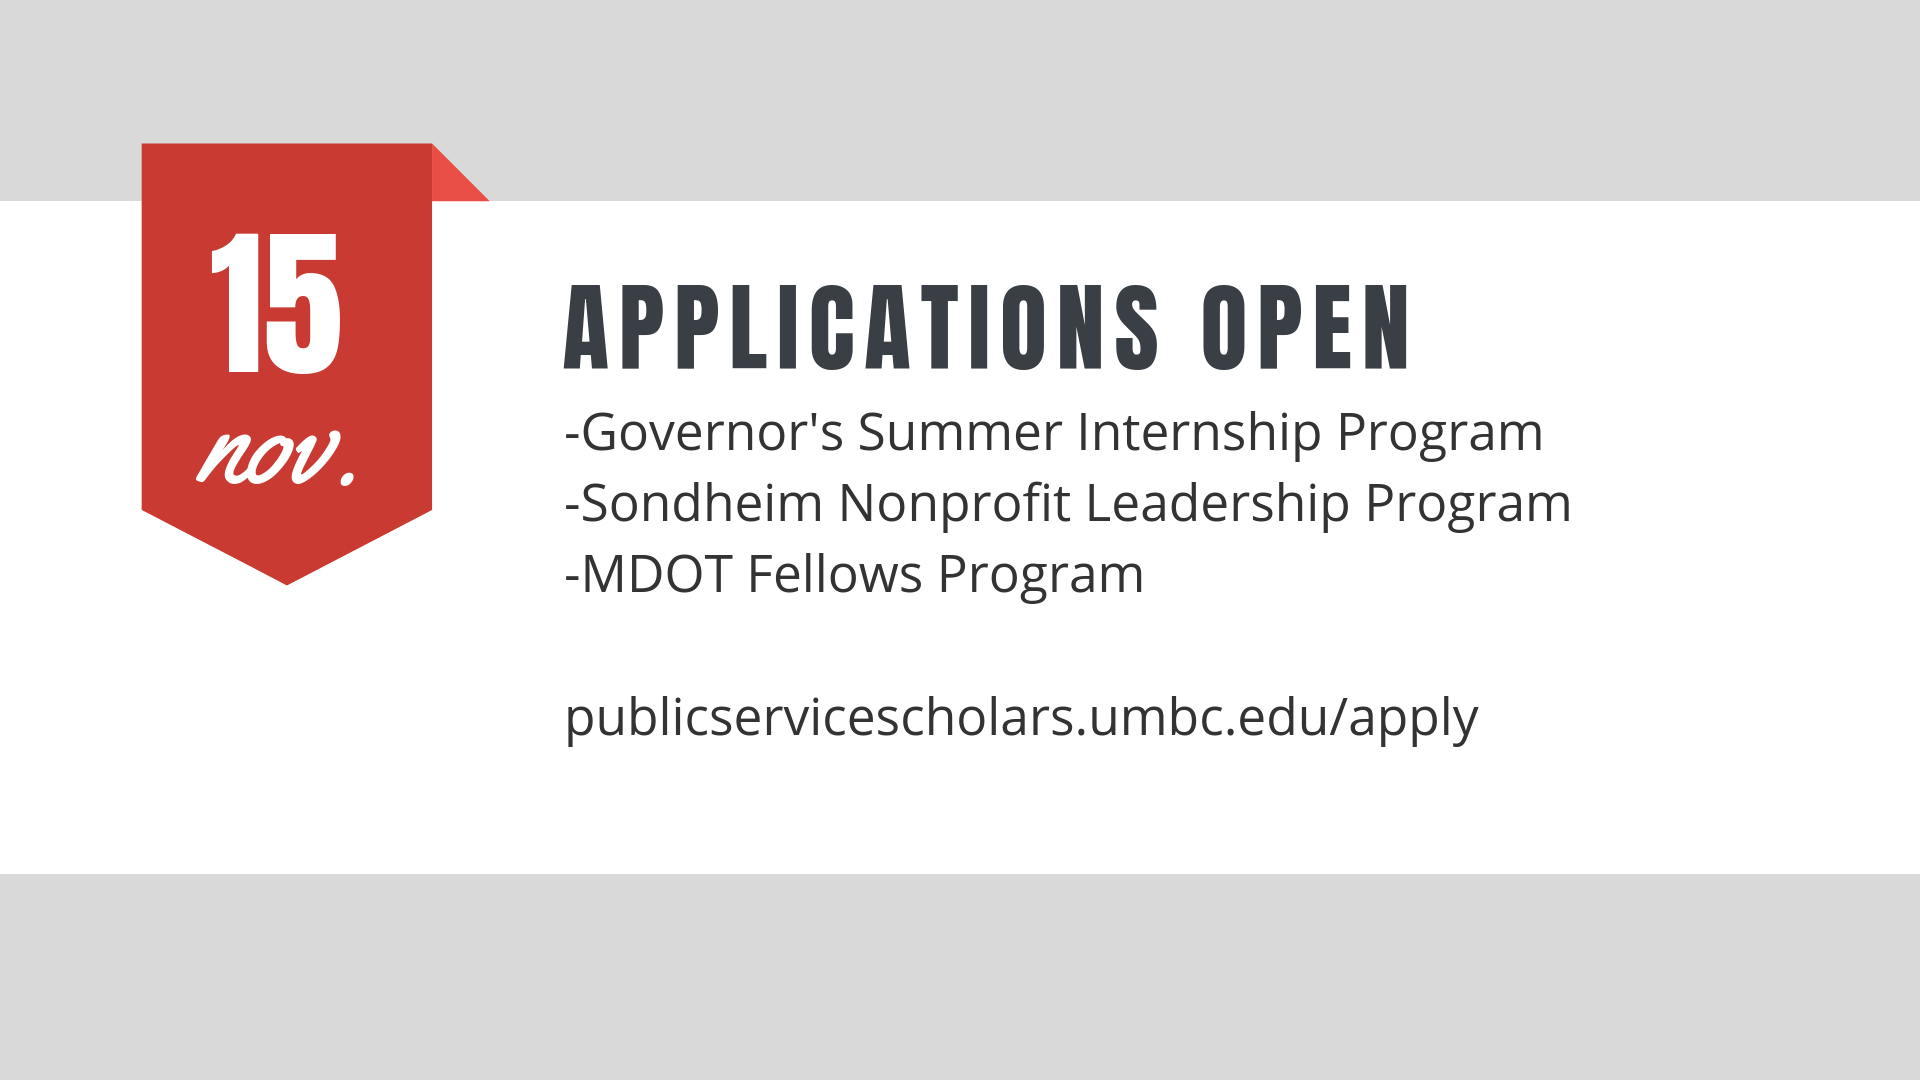 Applications Open November 15